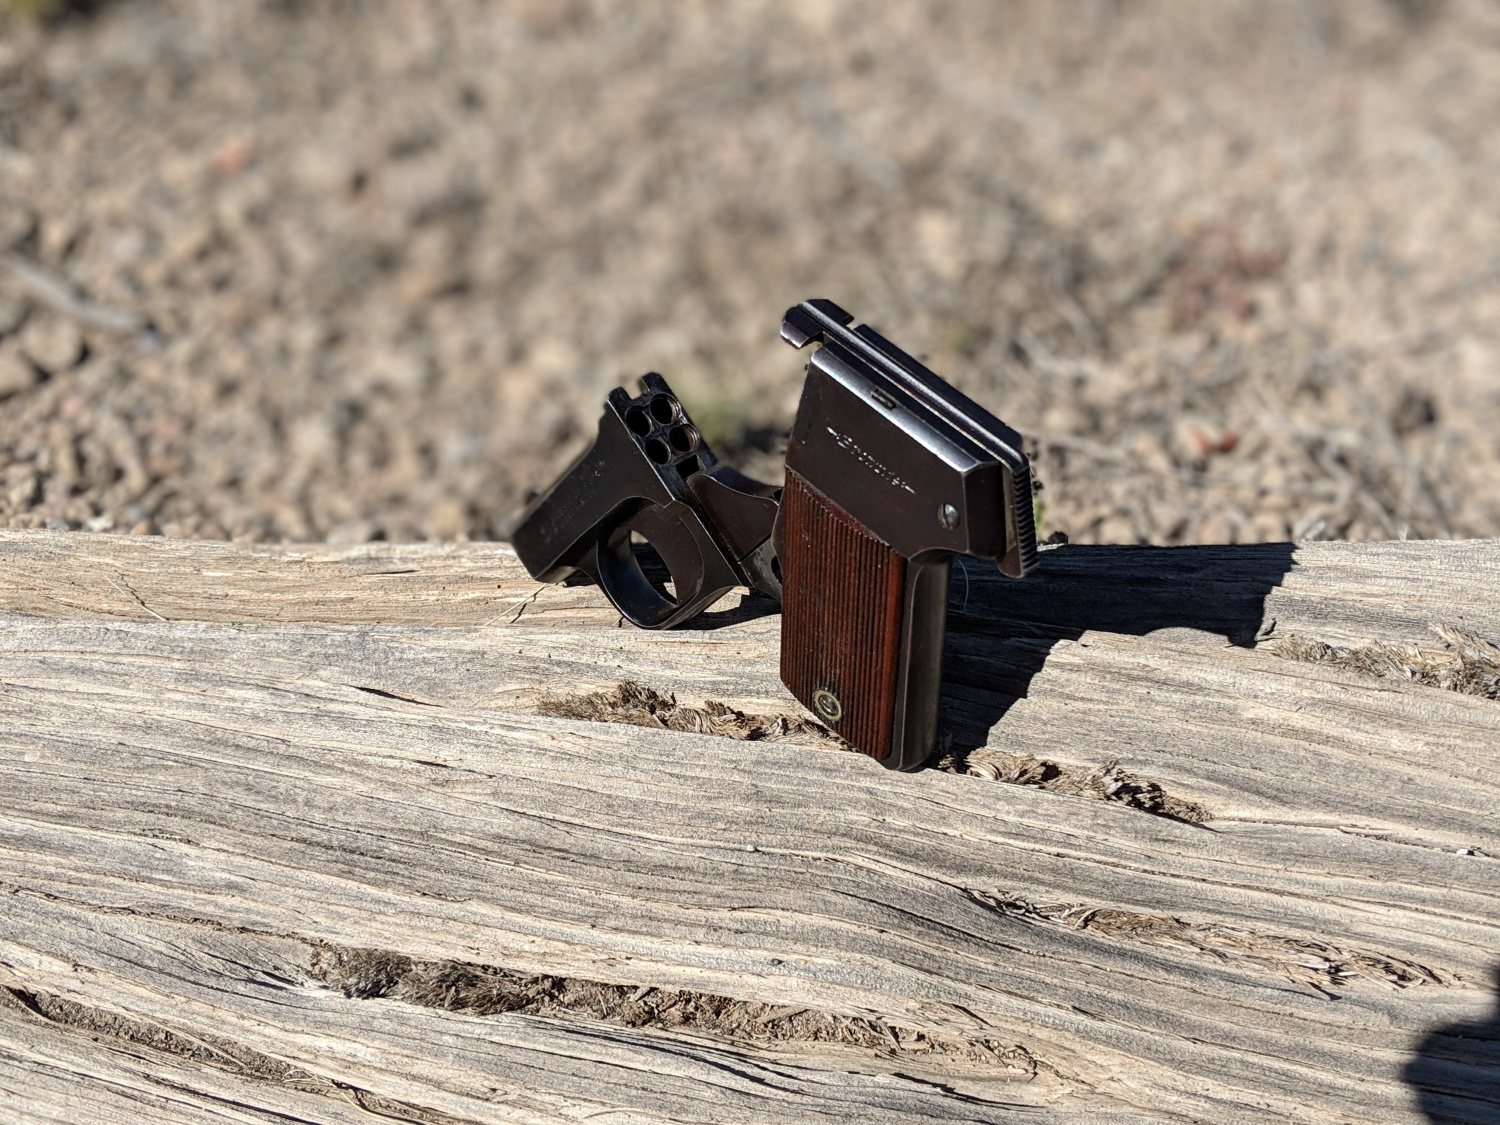 The Brownie was a pepperbox .22LR pistol for dispatching varmints.